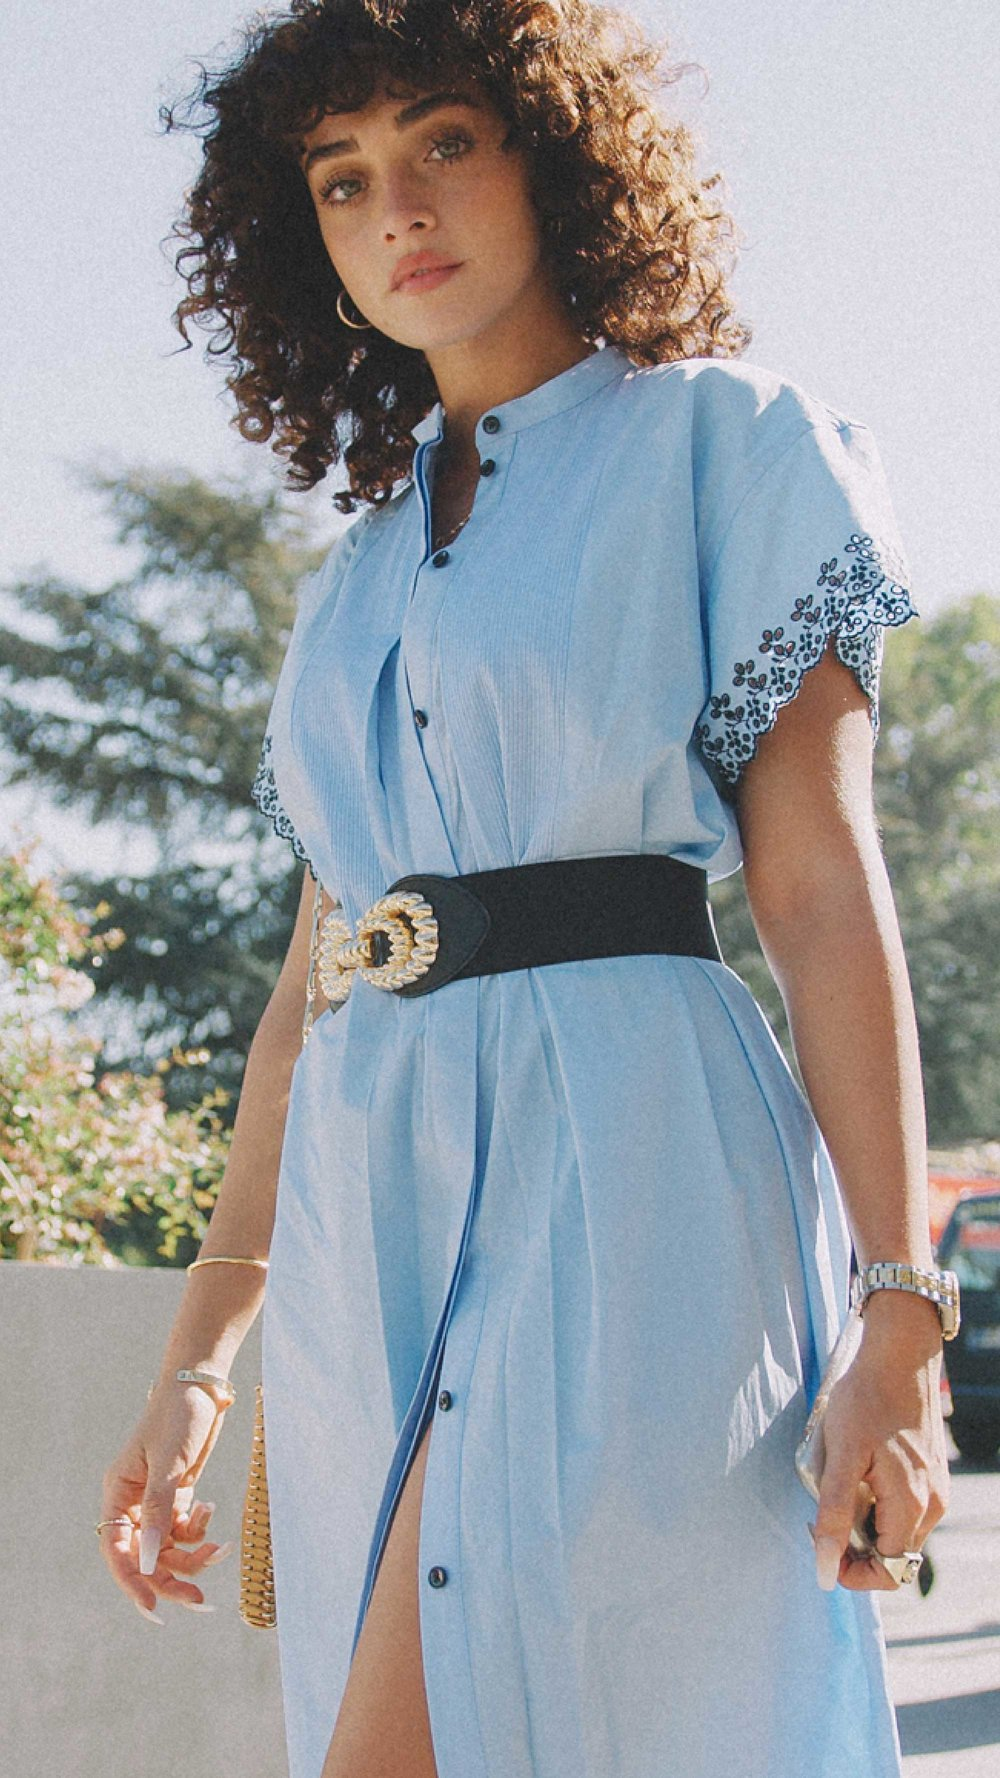 Paris-fashion-street-style-outfits-week-day-four-ss19-41.jpg